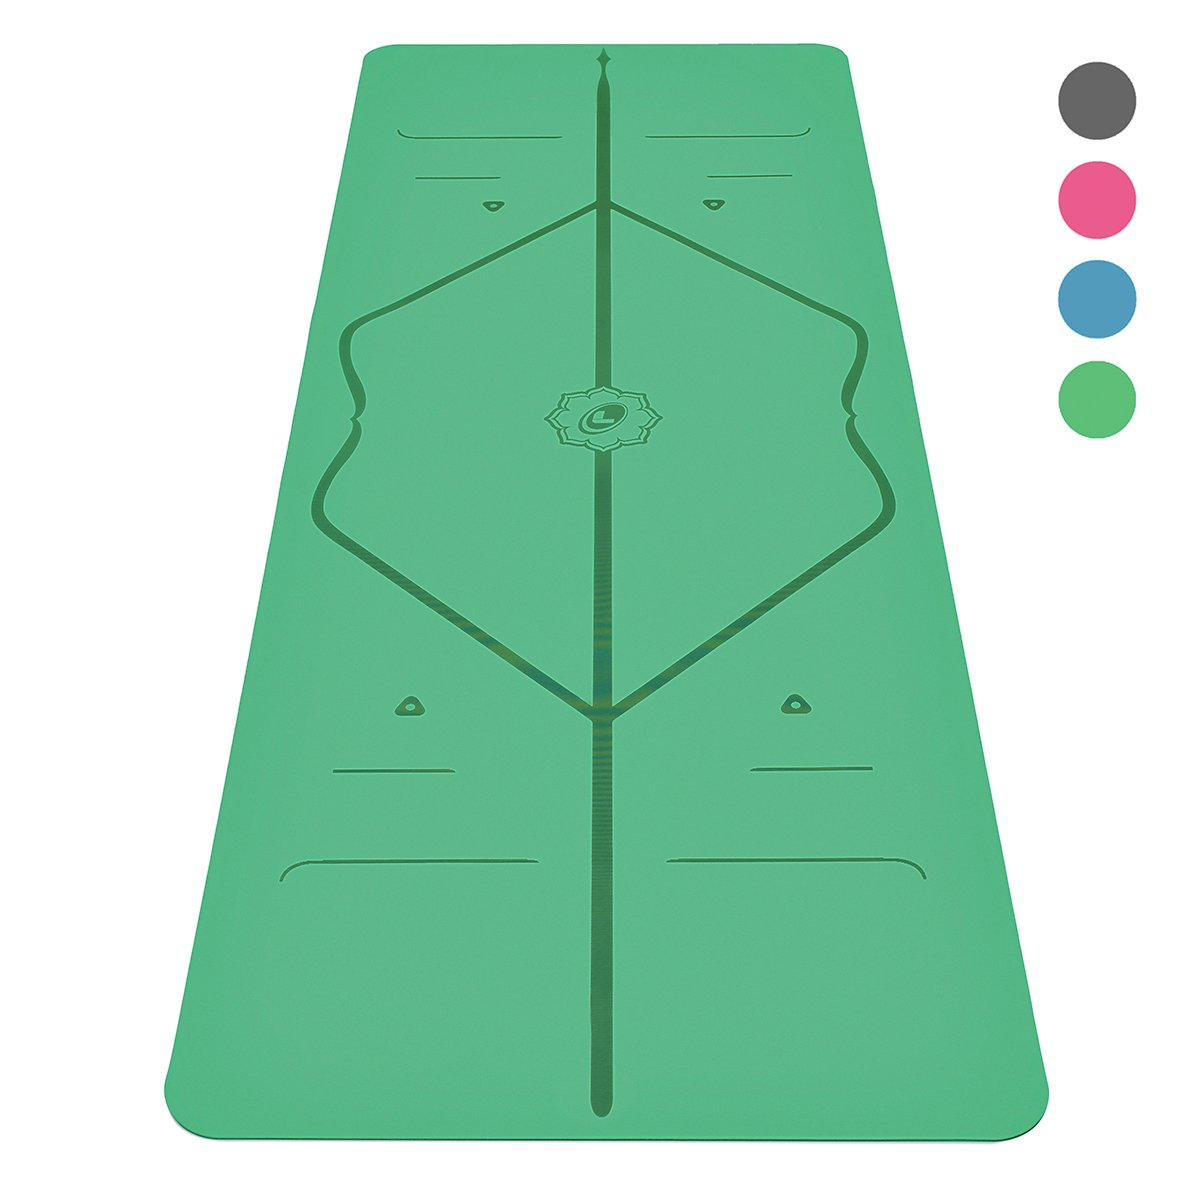 Liforme Yoga Mat - The World's Best Eco-Friendly, Non Slip Yoga Mat with The Original Unique Alignment Marker System. Biodegradable Mat Made with Natural Rubber & A Warrior-Like Grip (Green)